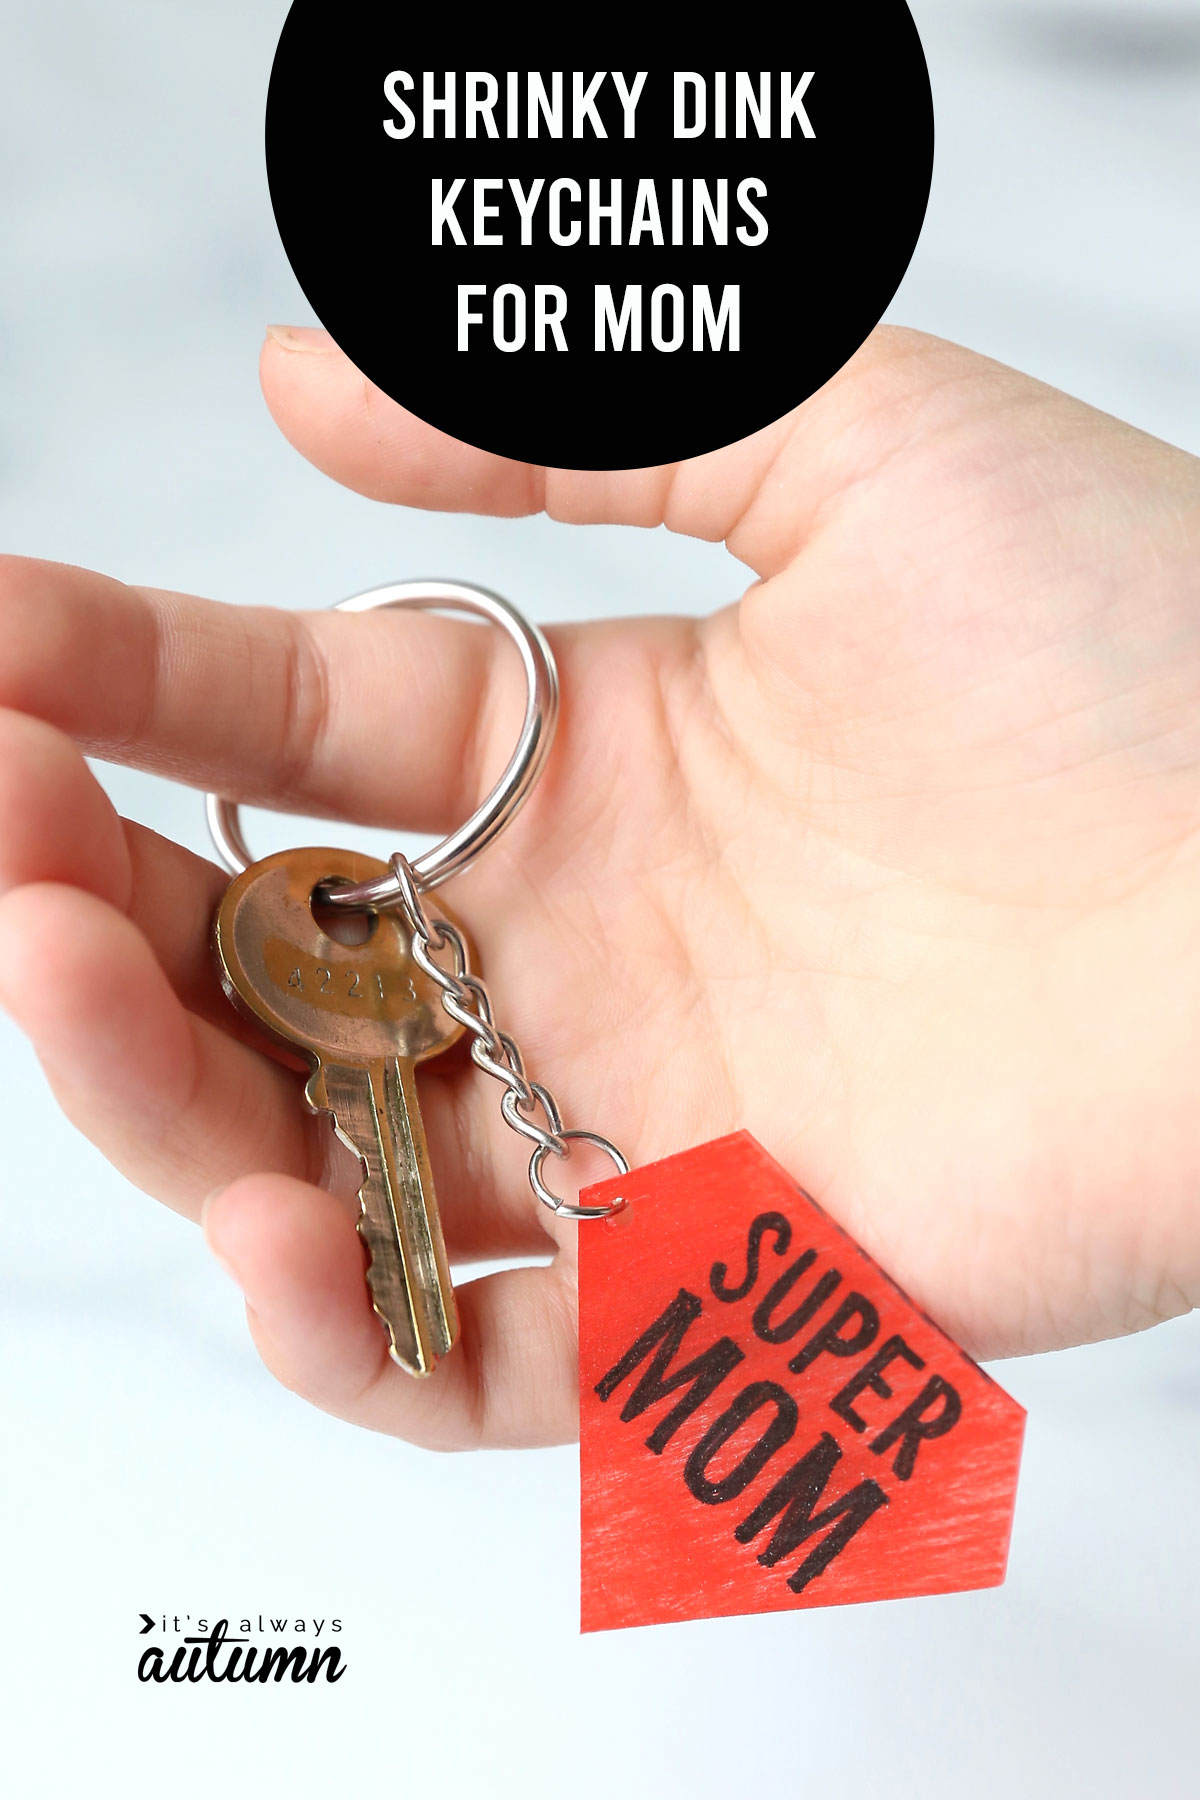 Hand holding key on a super mom keychain and words: shrinky dink keychain for mom